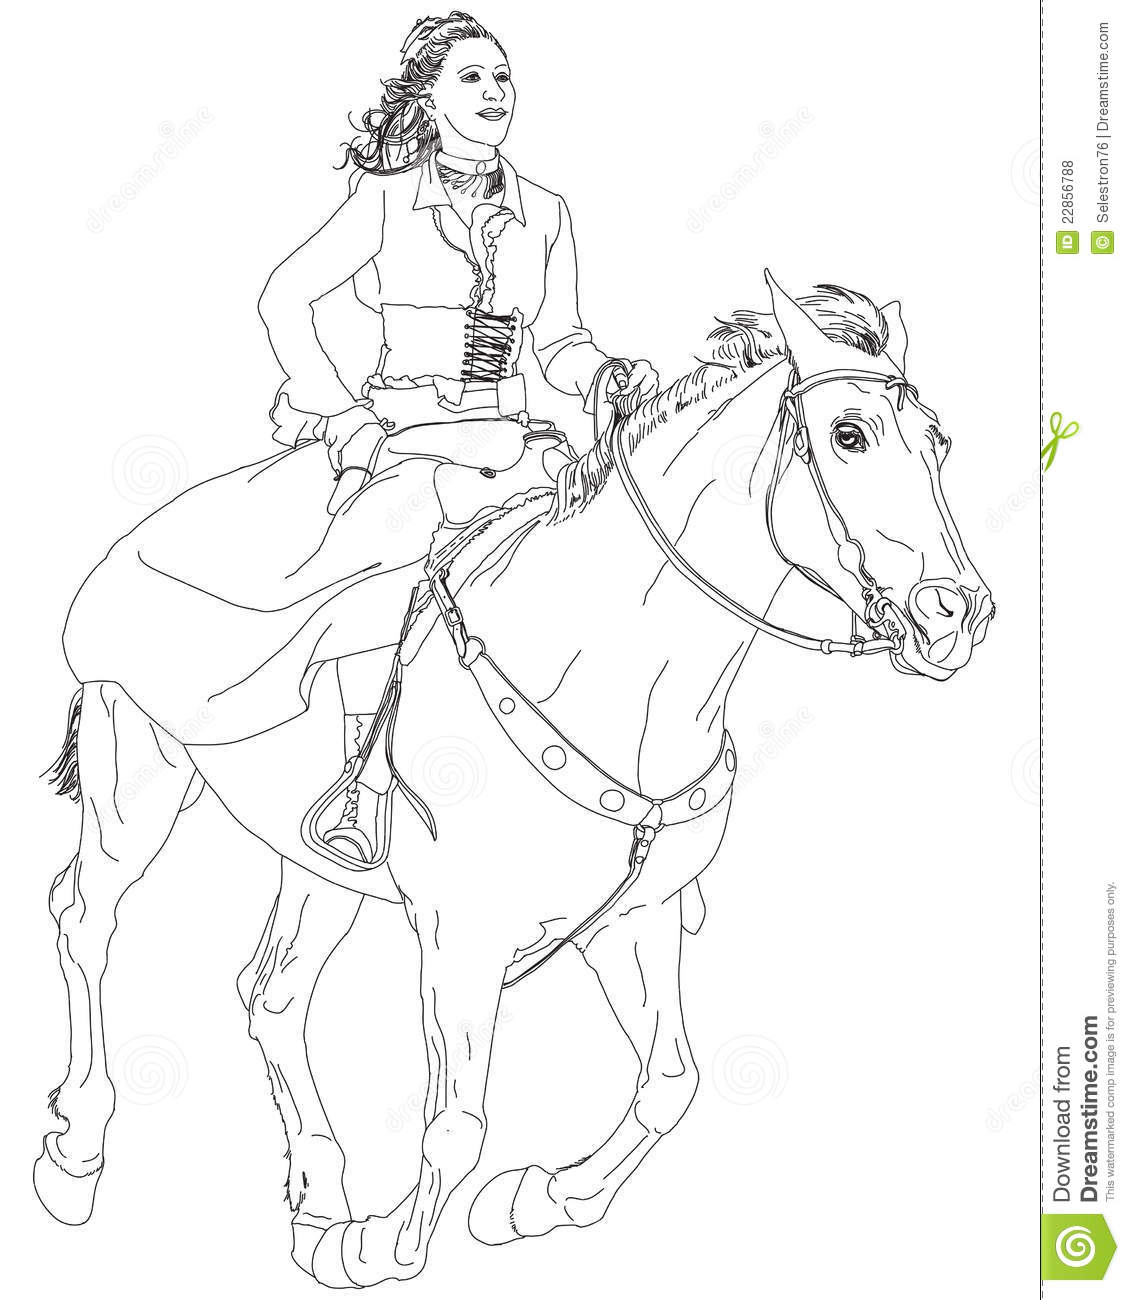 Girl riding a horse stock vector. Illustration of female - 22856788